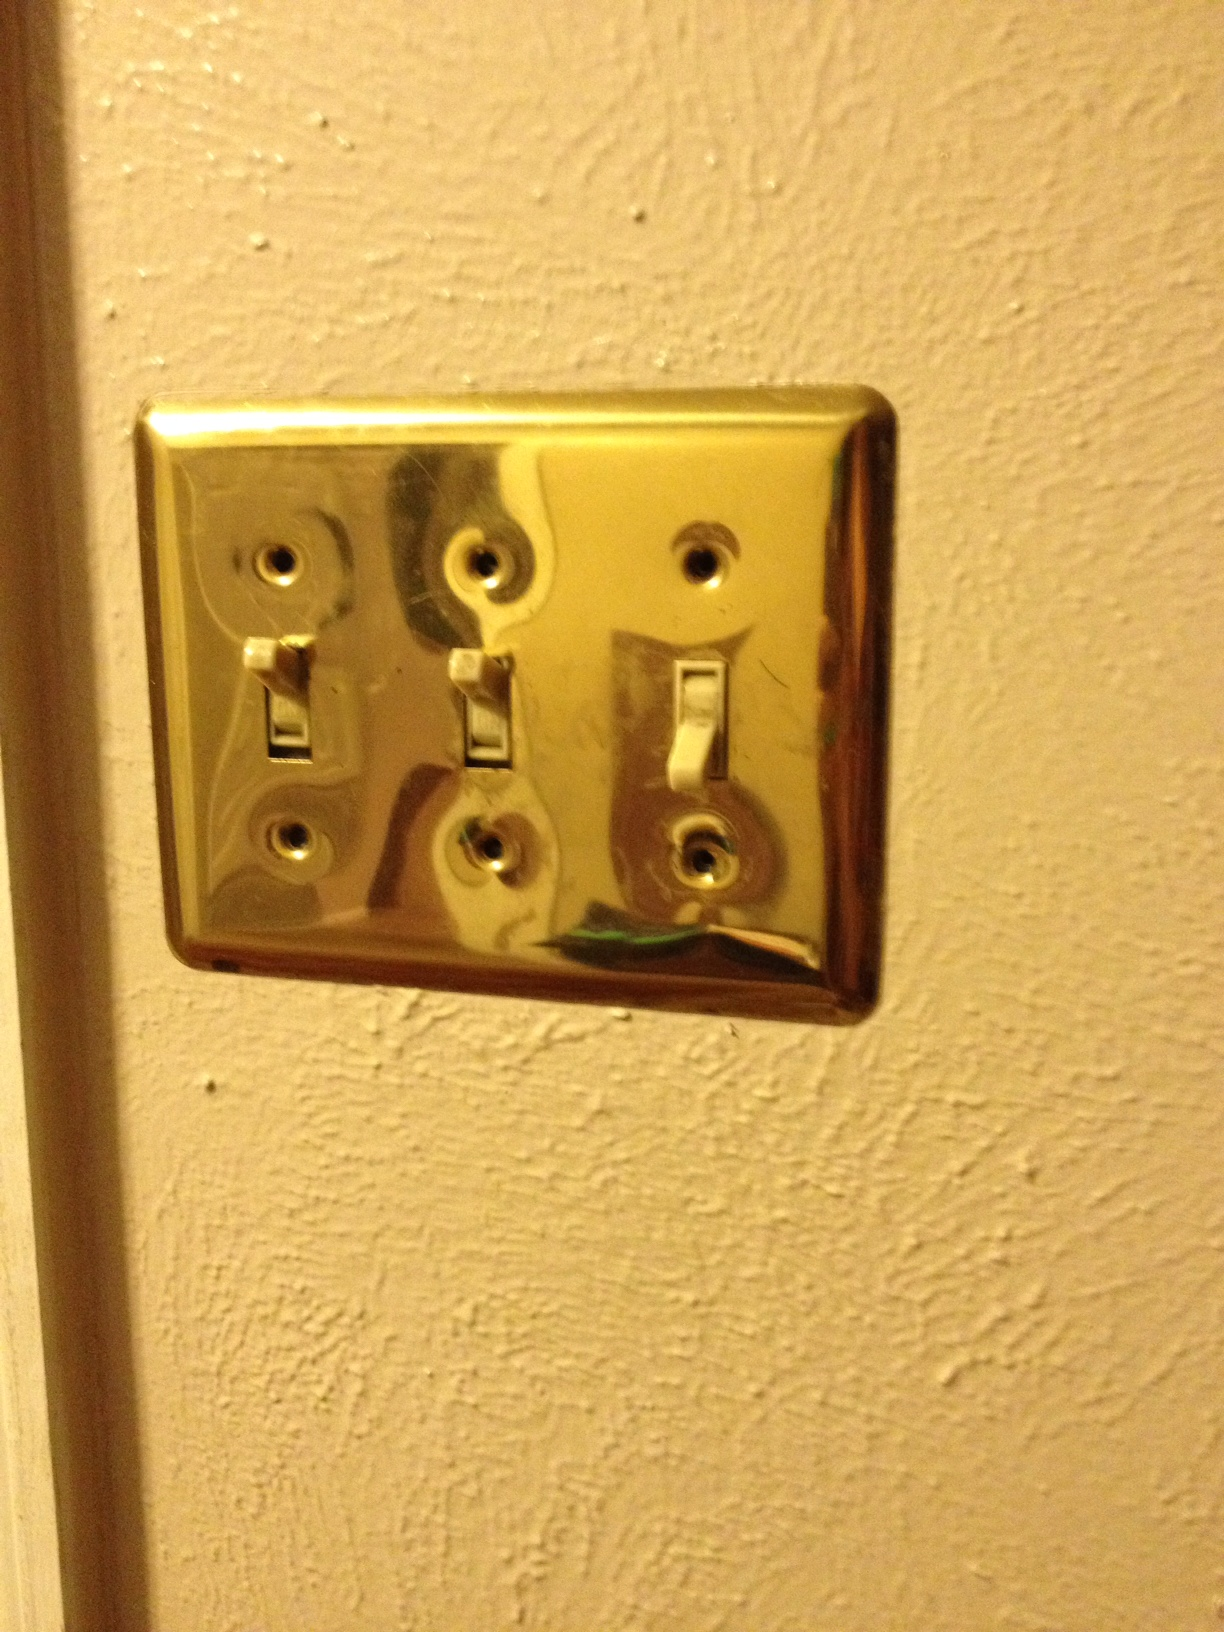 Spray Painting Light Switch Covers The Creativity In The Chaos